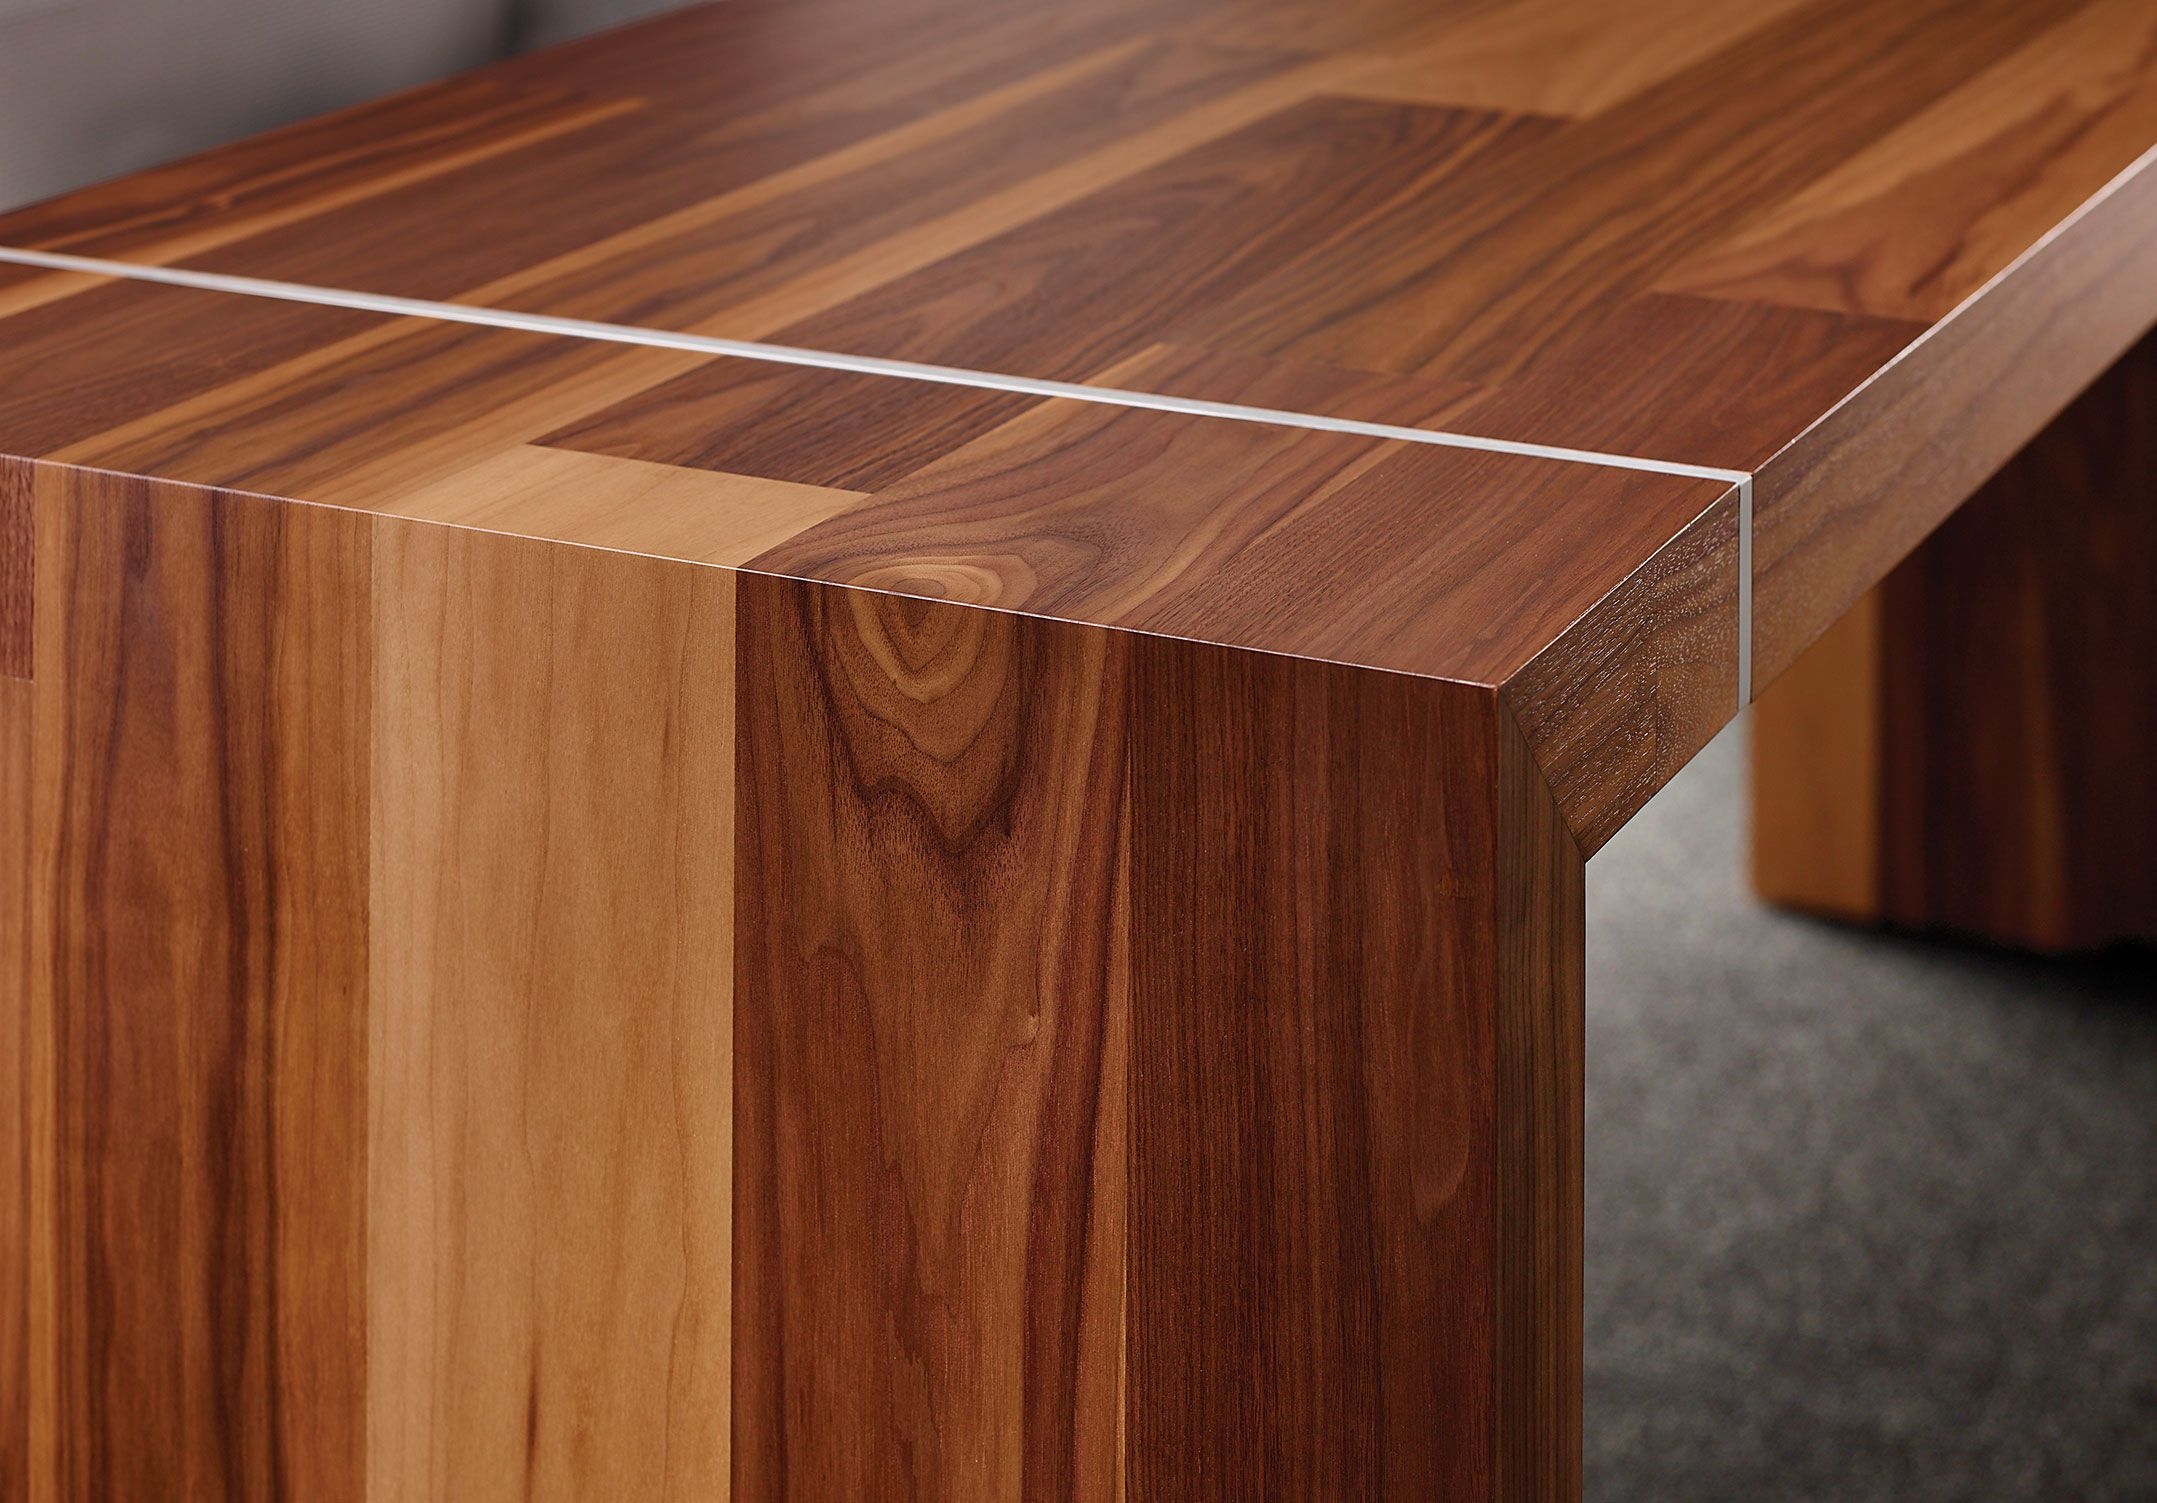 Tesano Features Mitered Corners With Wrapped Veneers Shown